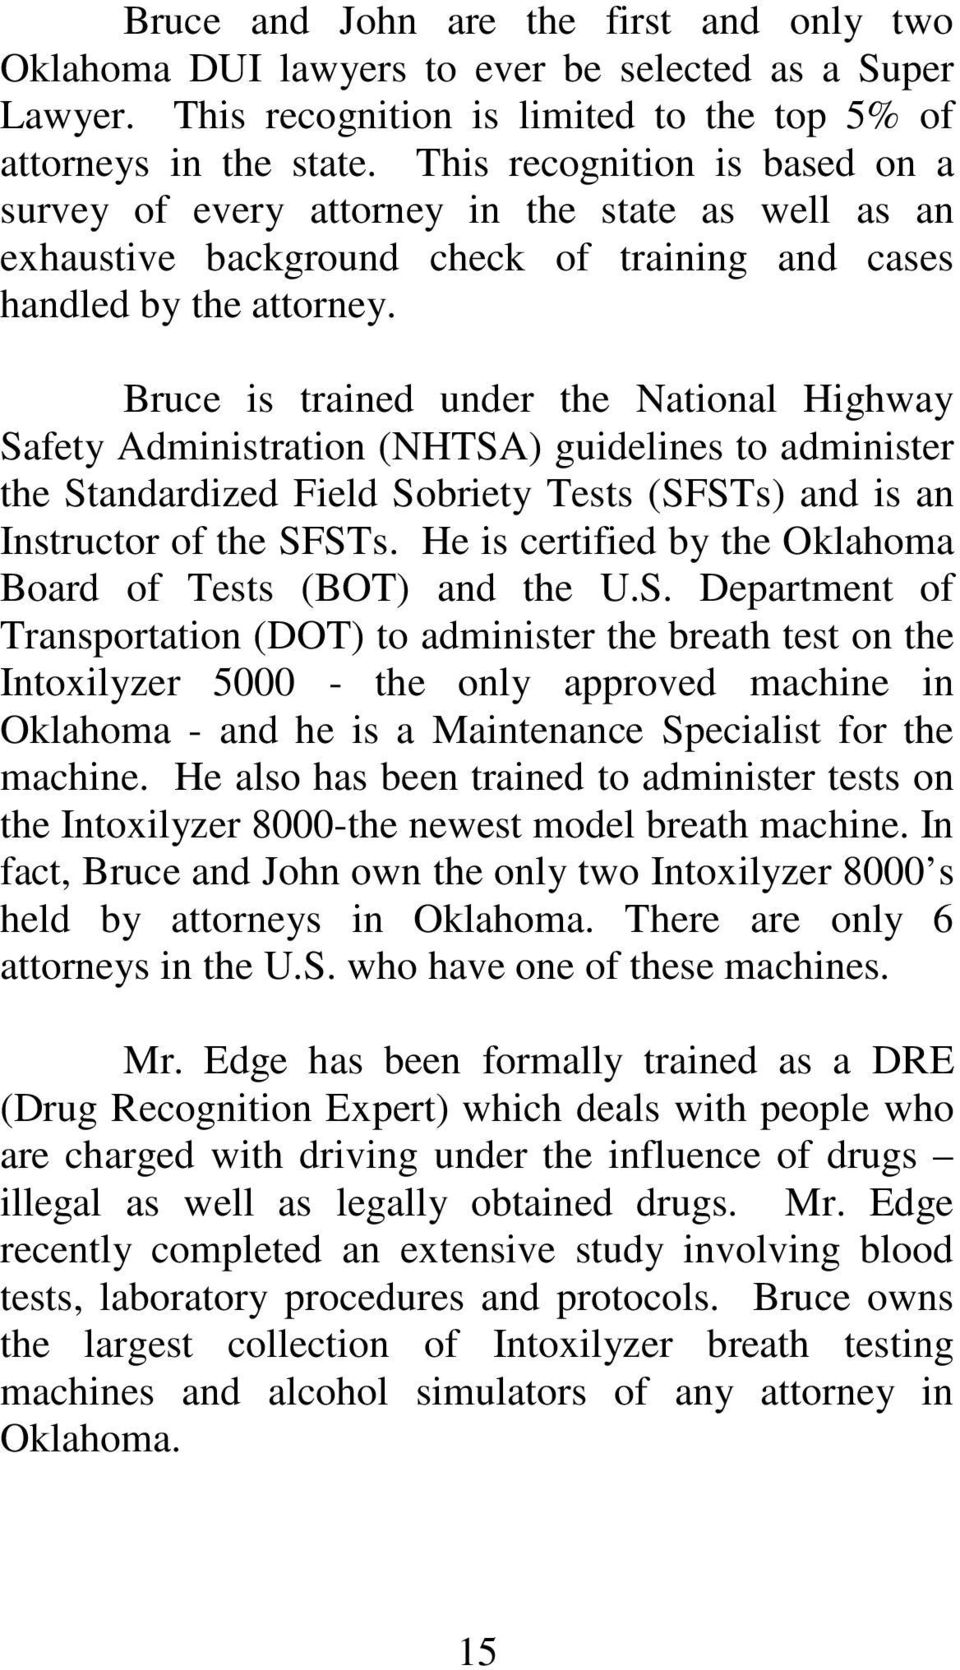 Bruce is trained under the National Highway Safety Administration (NHTSA) guidelines to administer the Standardized Field Sobriety Tests (SFSTs) and is an Instructor of the SFSTs.